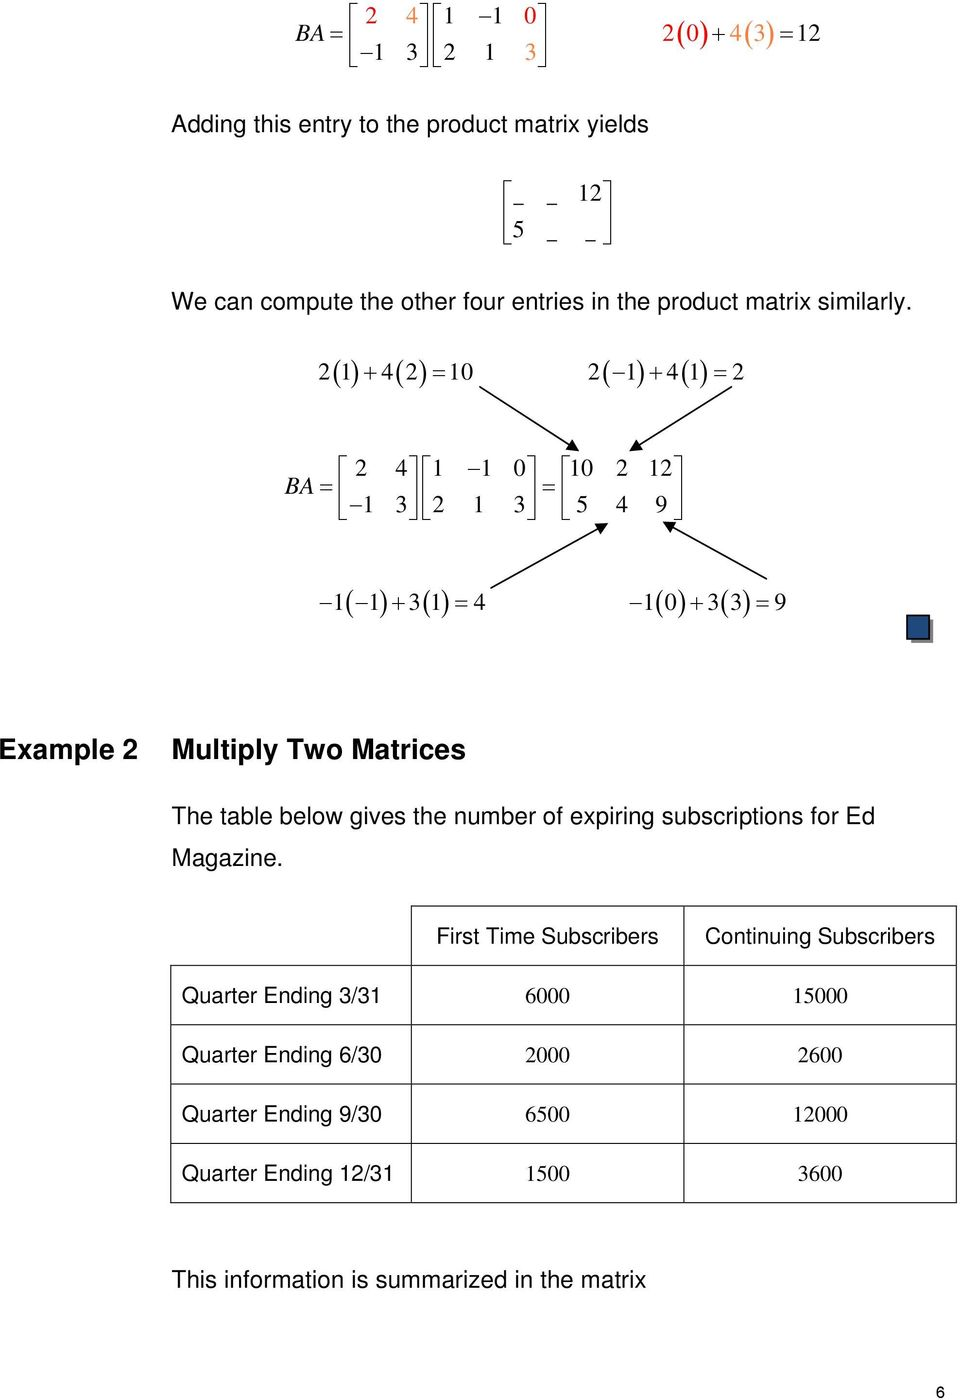 2 42 0 2 4 2 2 4 0 0 2 2 BA 3 2 3 5 4 9 3 4 0 33 9 Example 2 Multiply Two Matrices The table below gives the number of expiring